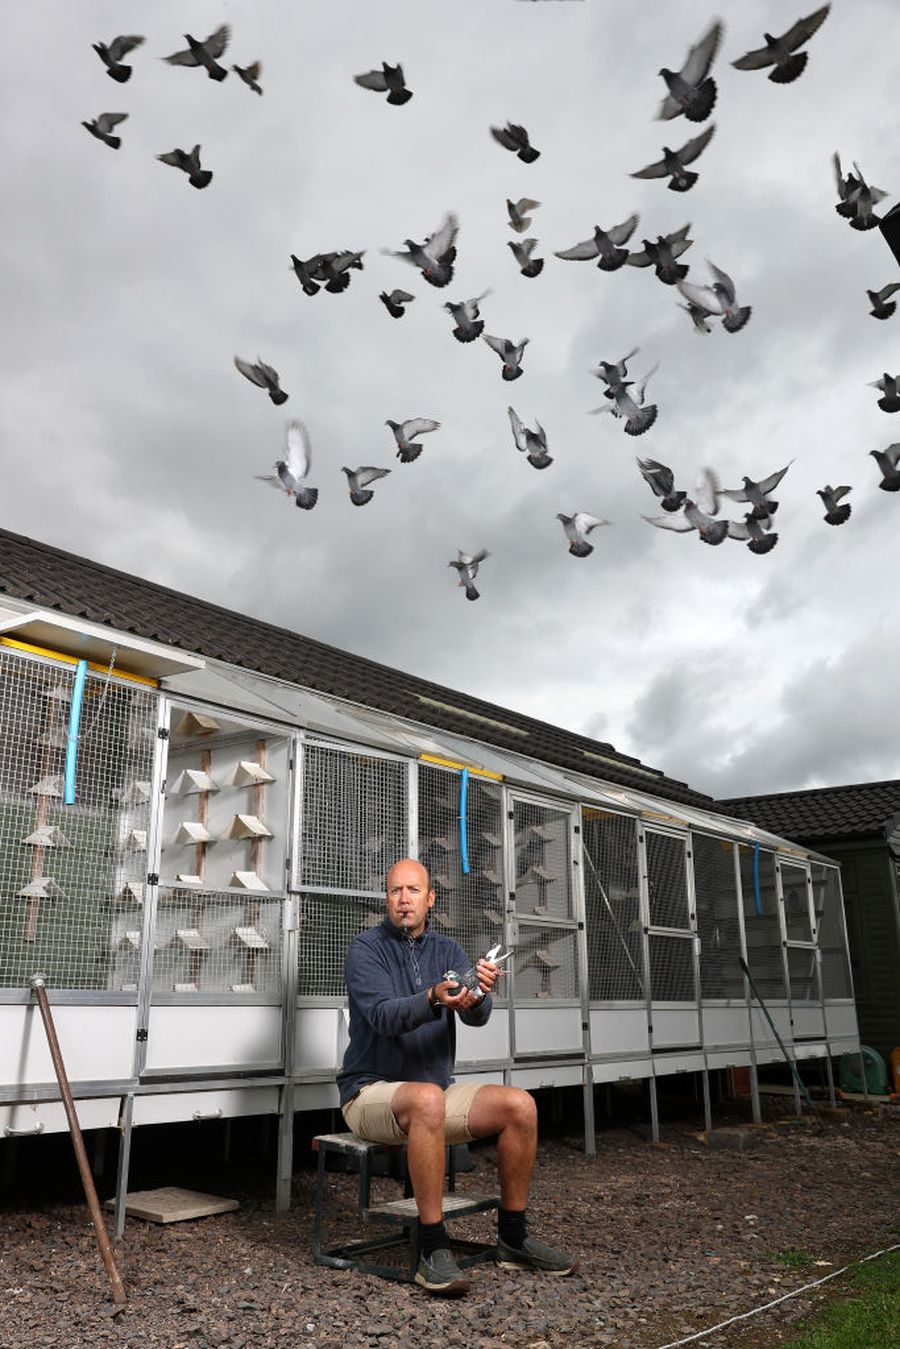 YEOVIL, ENGLAND - JUNE 25: Pigeons are liberated by the Warwickshire and District Federation at  Yeovil Showground on June 26, 2020 in Yeovil, England. (Photo by Michael Steele/Getty Images)